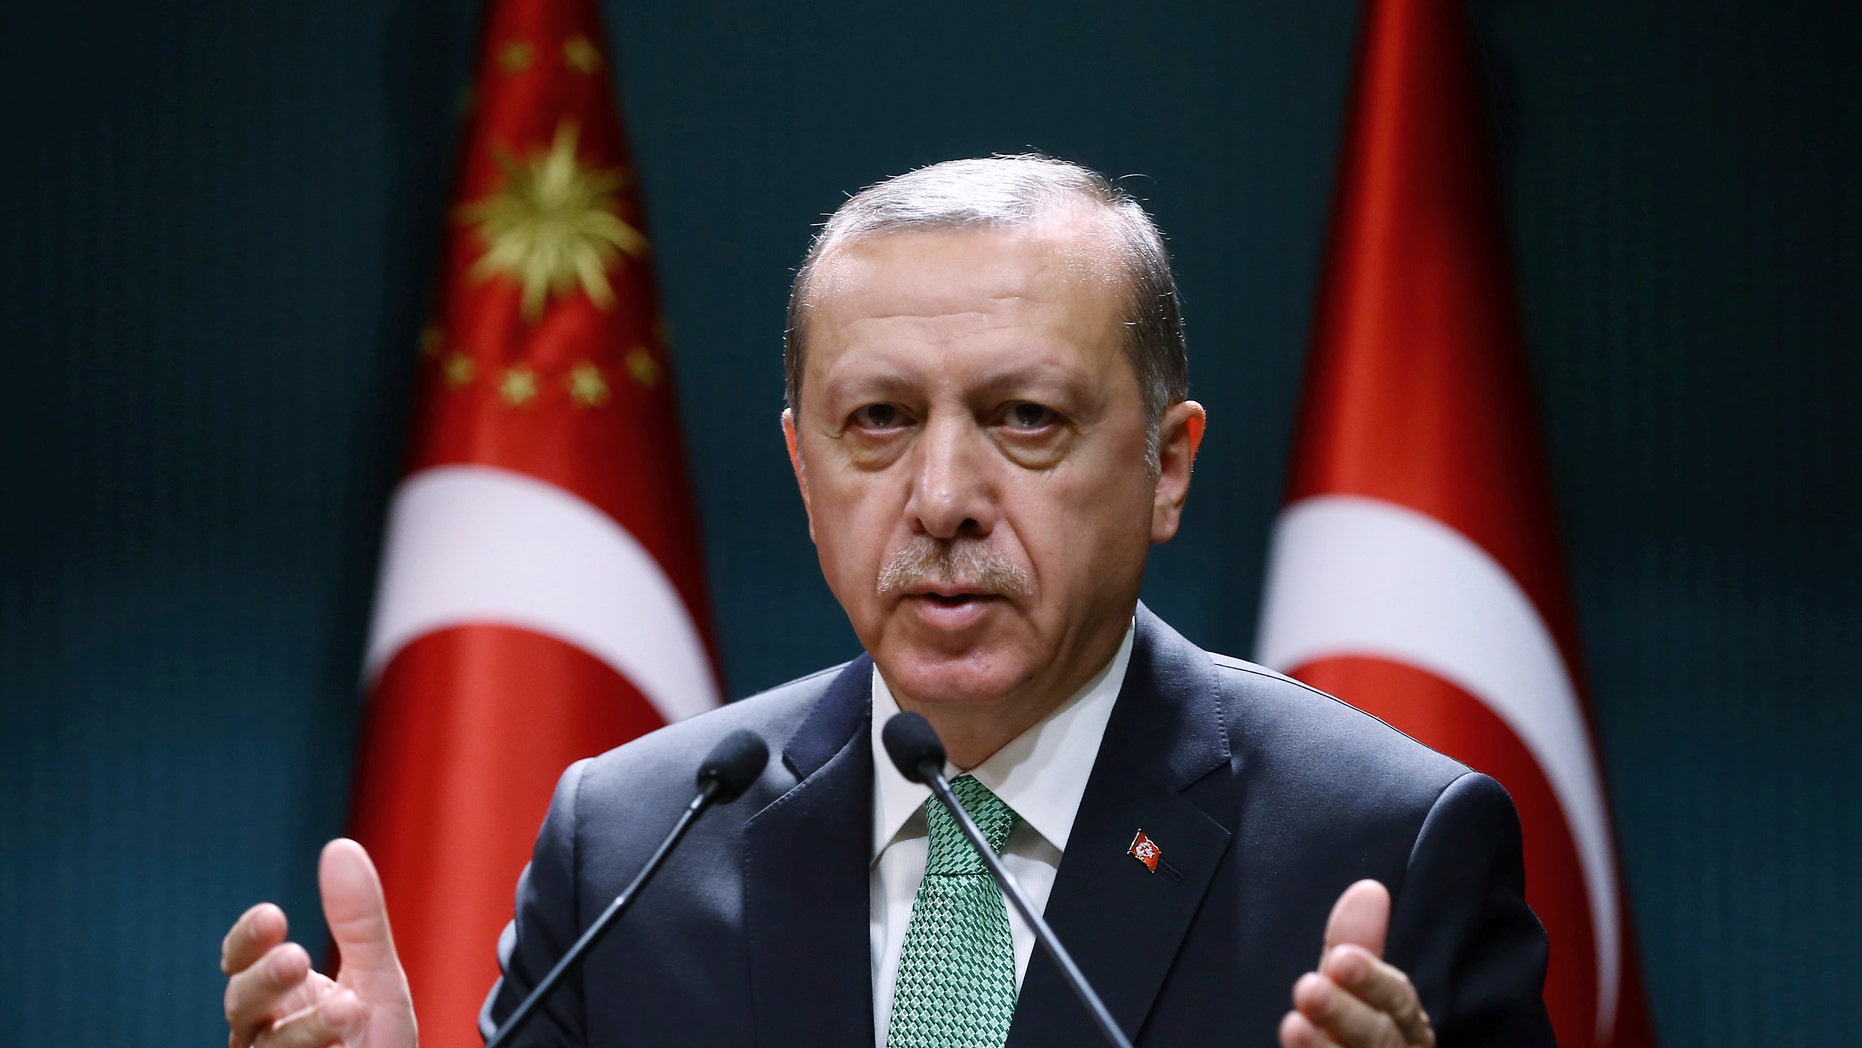 Turkish President Erdogan called on the Turks to take to the streets 16.07.2016 93